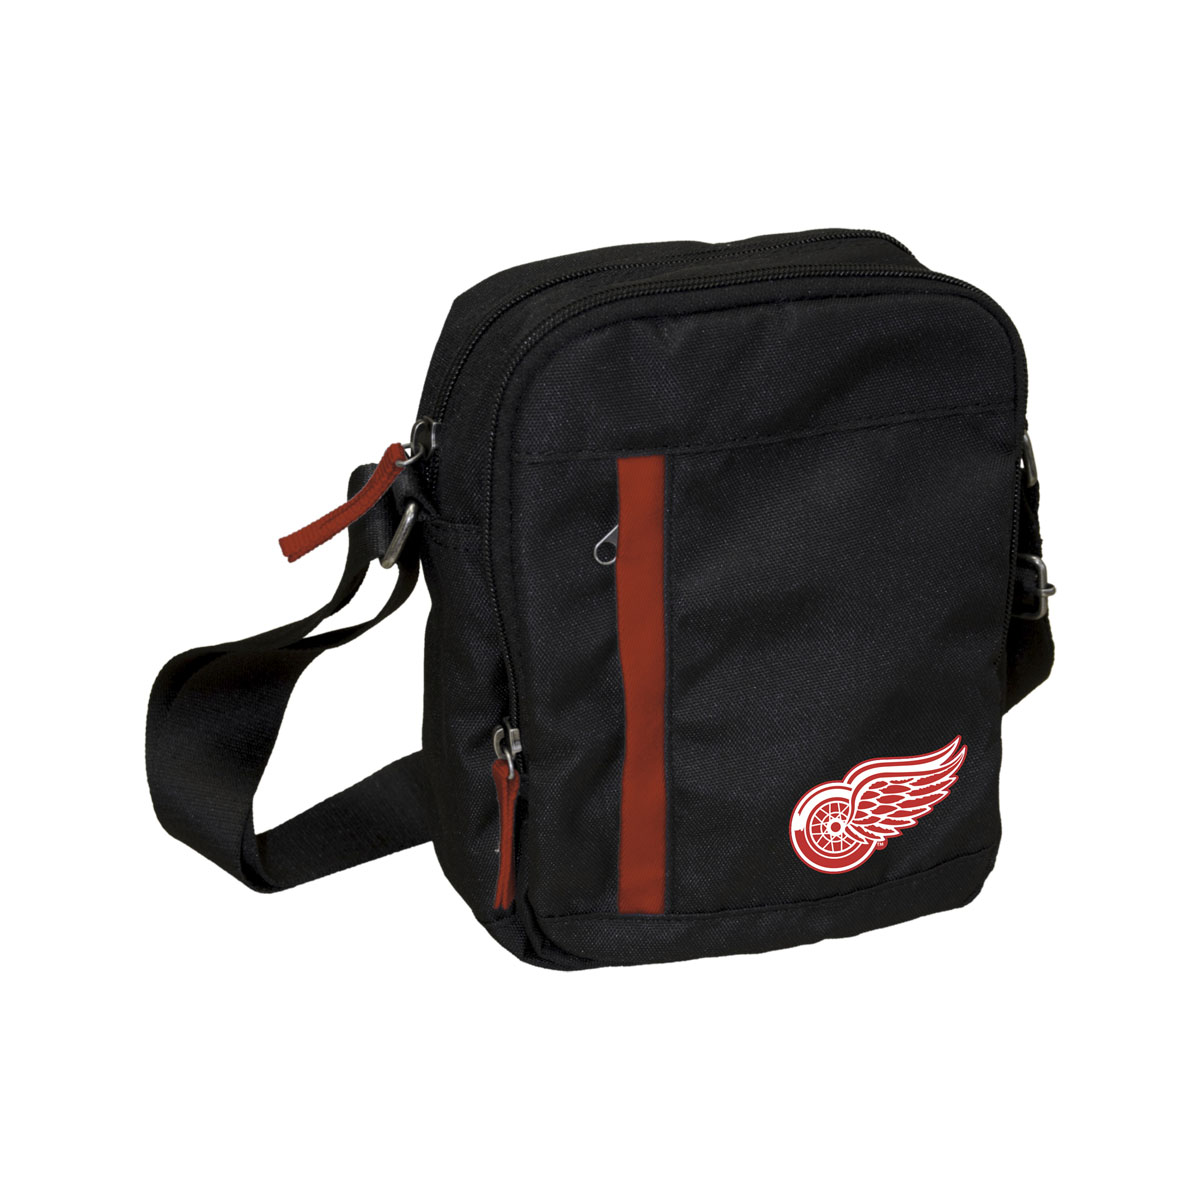 "Сумка на ремне NHL ""Red Wings"", цвет: черный, 3,5 л. 58017"